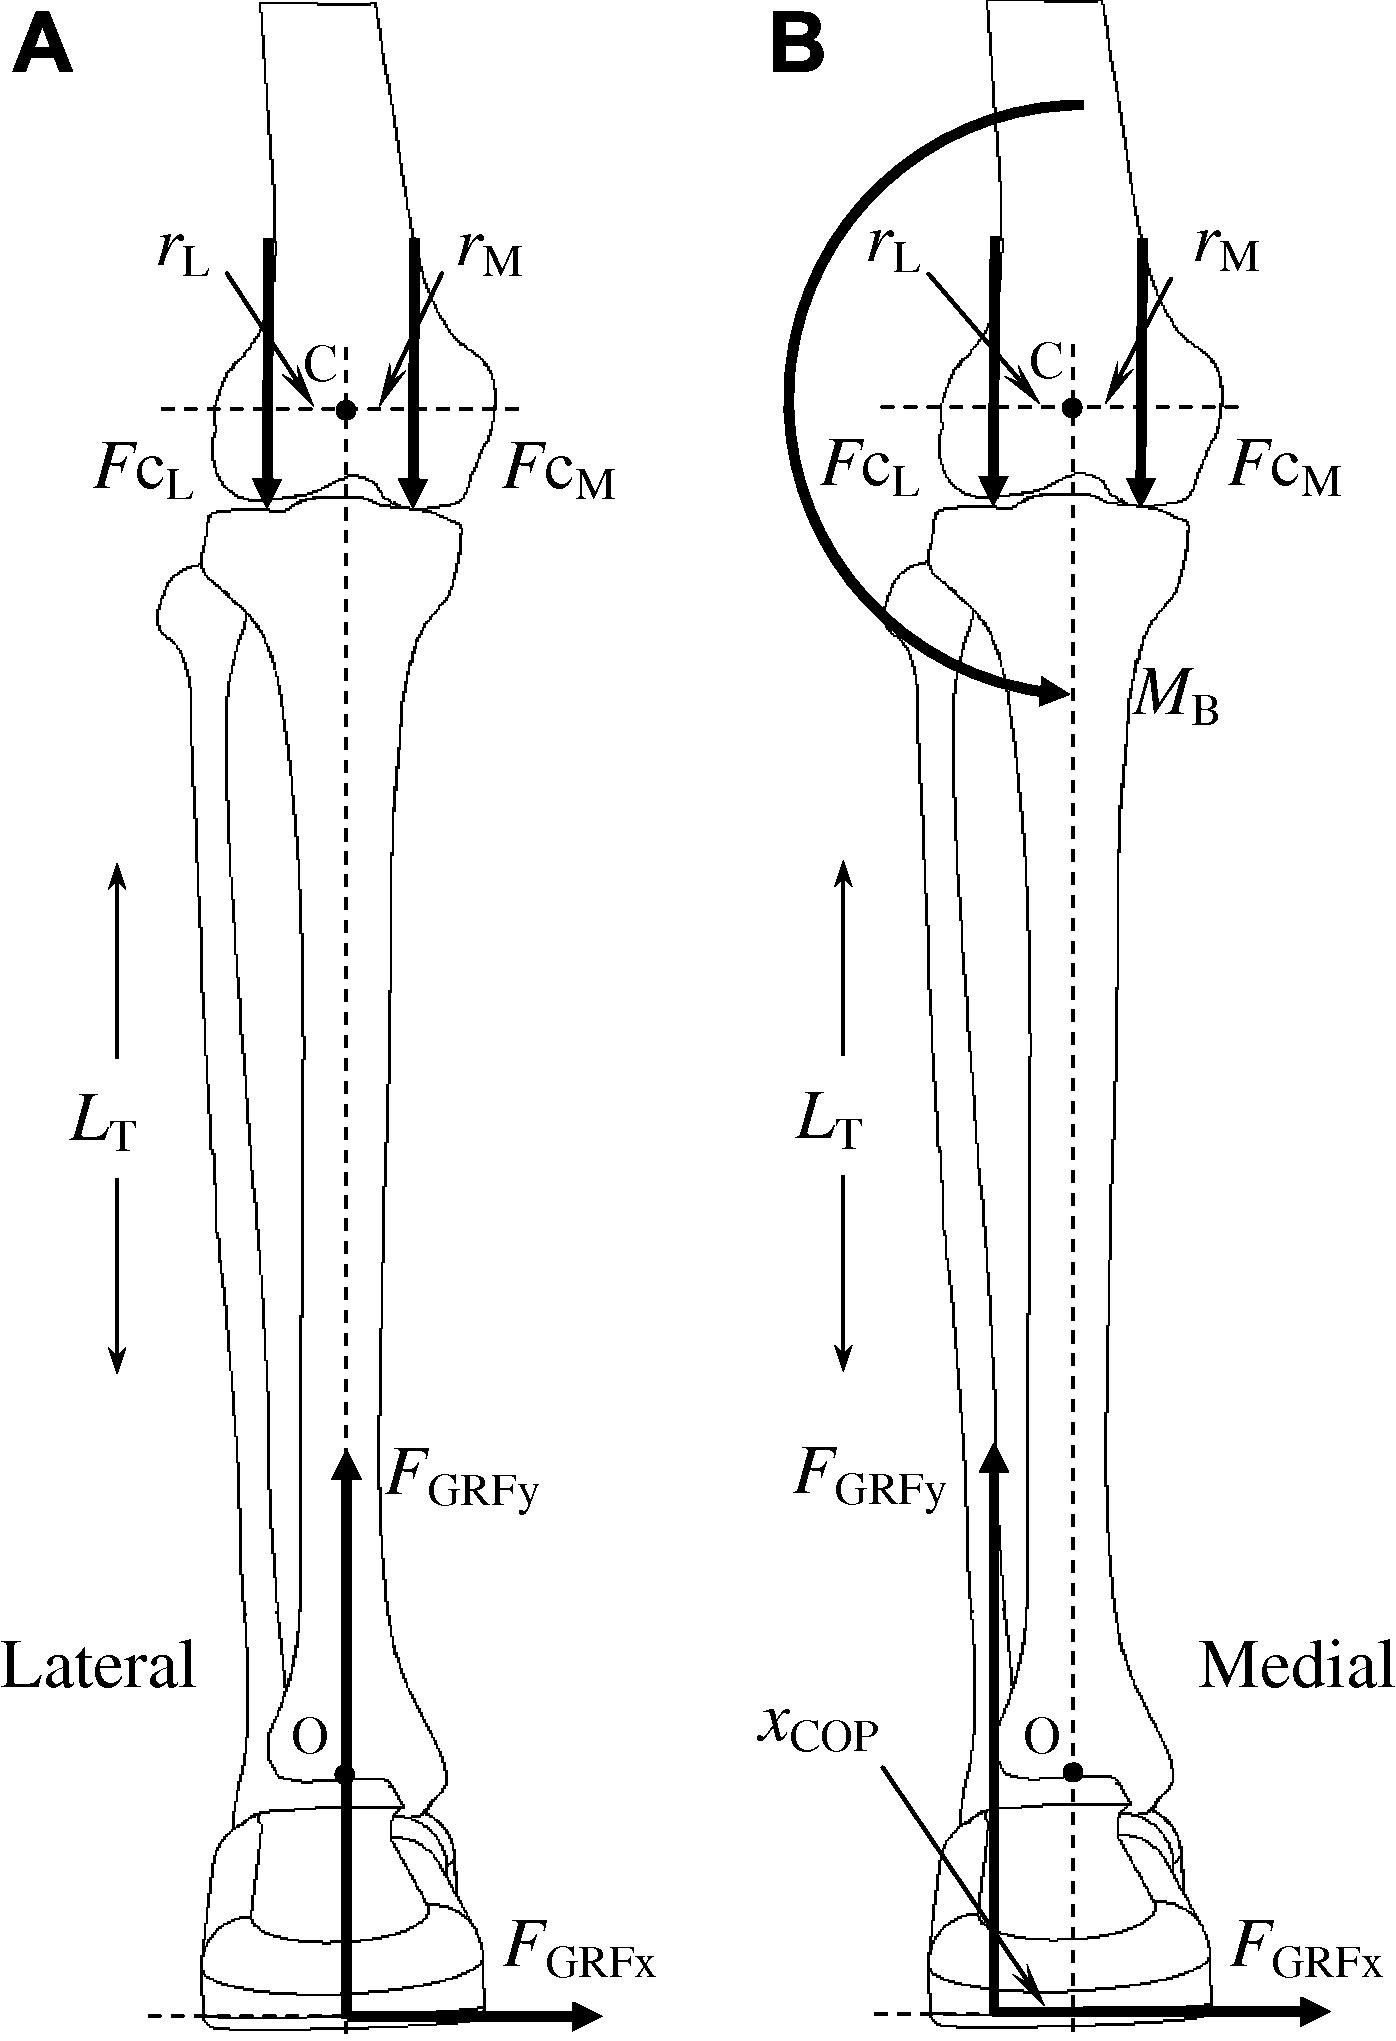 Effects Of Foot Orthoses And Valgus Bracing On The Knee